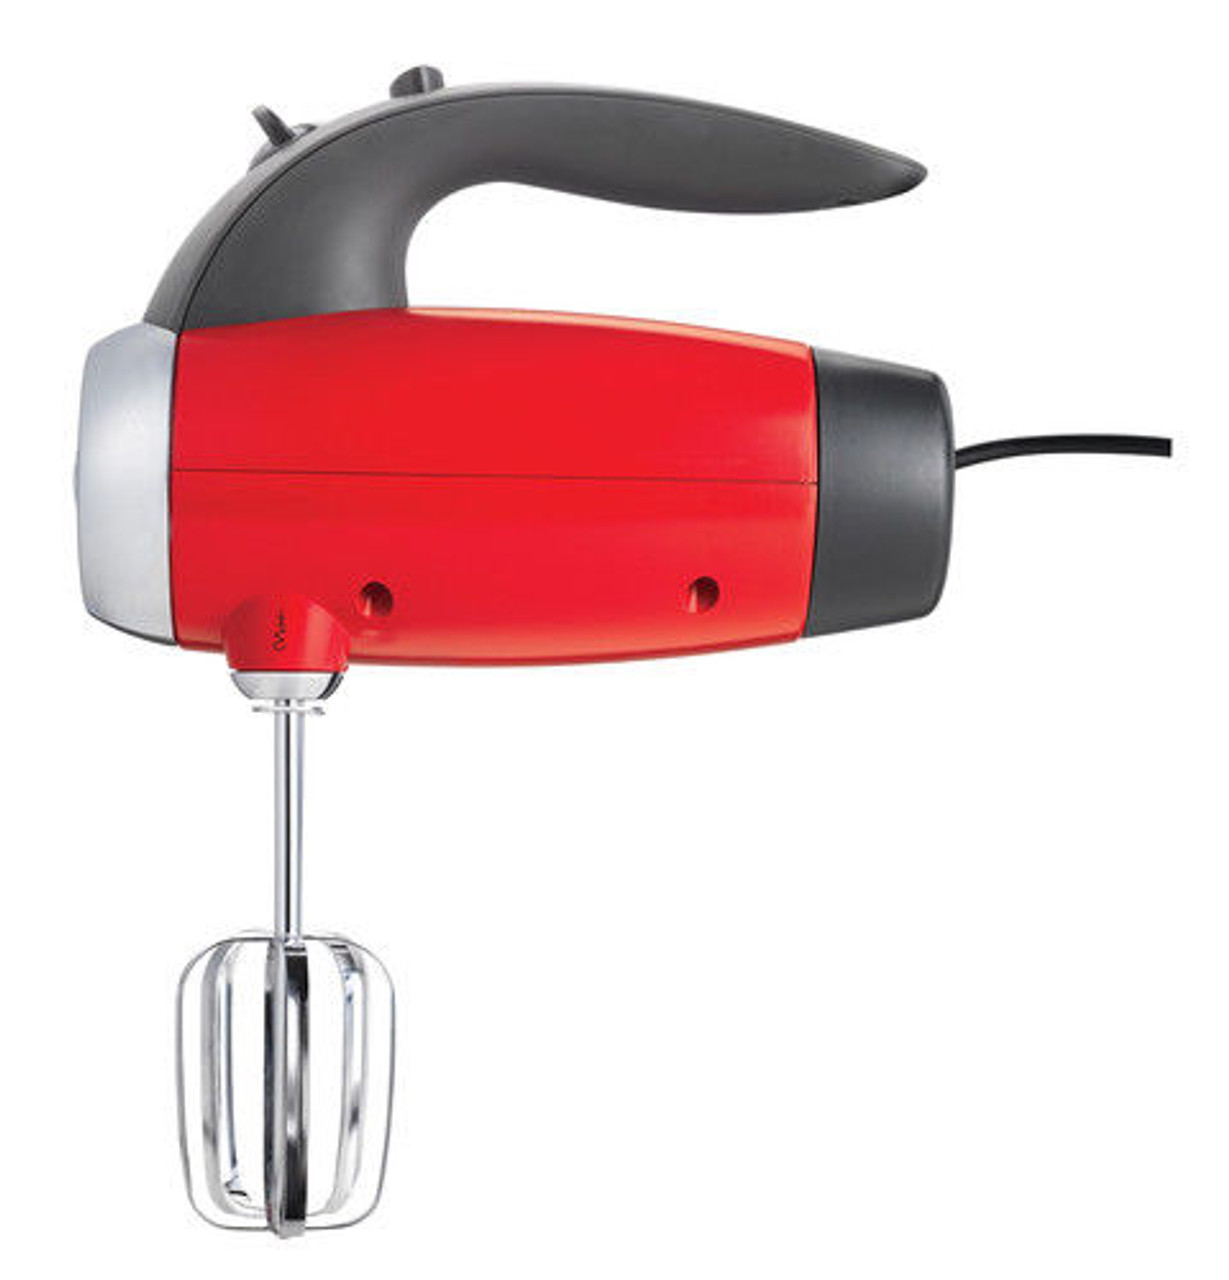 Sunbeam JM6600R Mixmaster® Hand Mixer - Toffee Apple Red